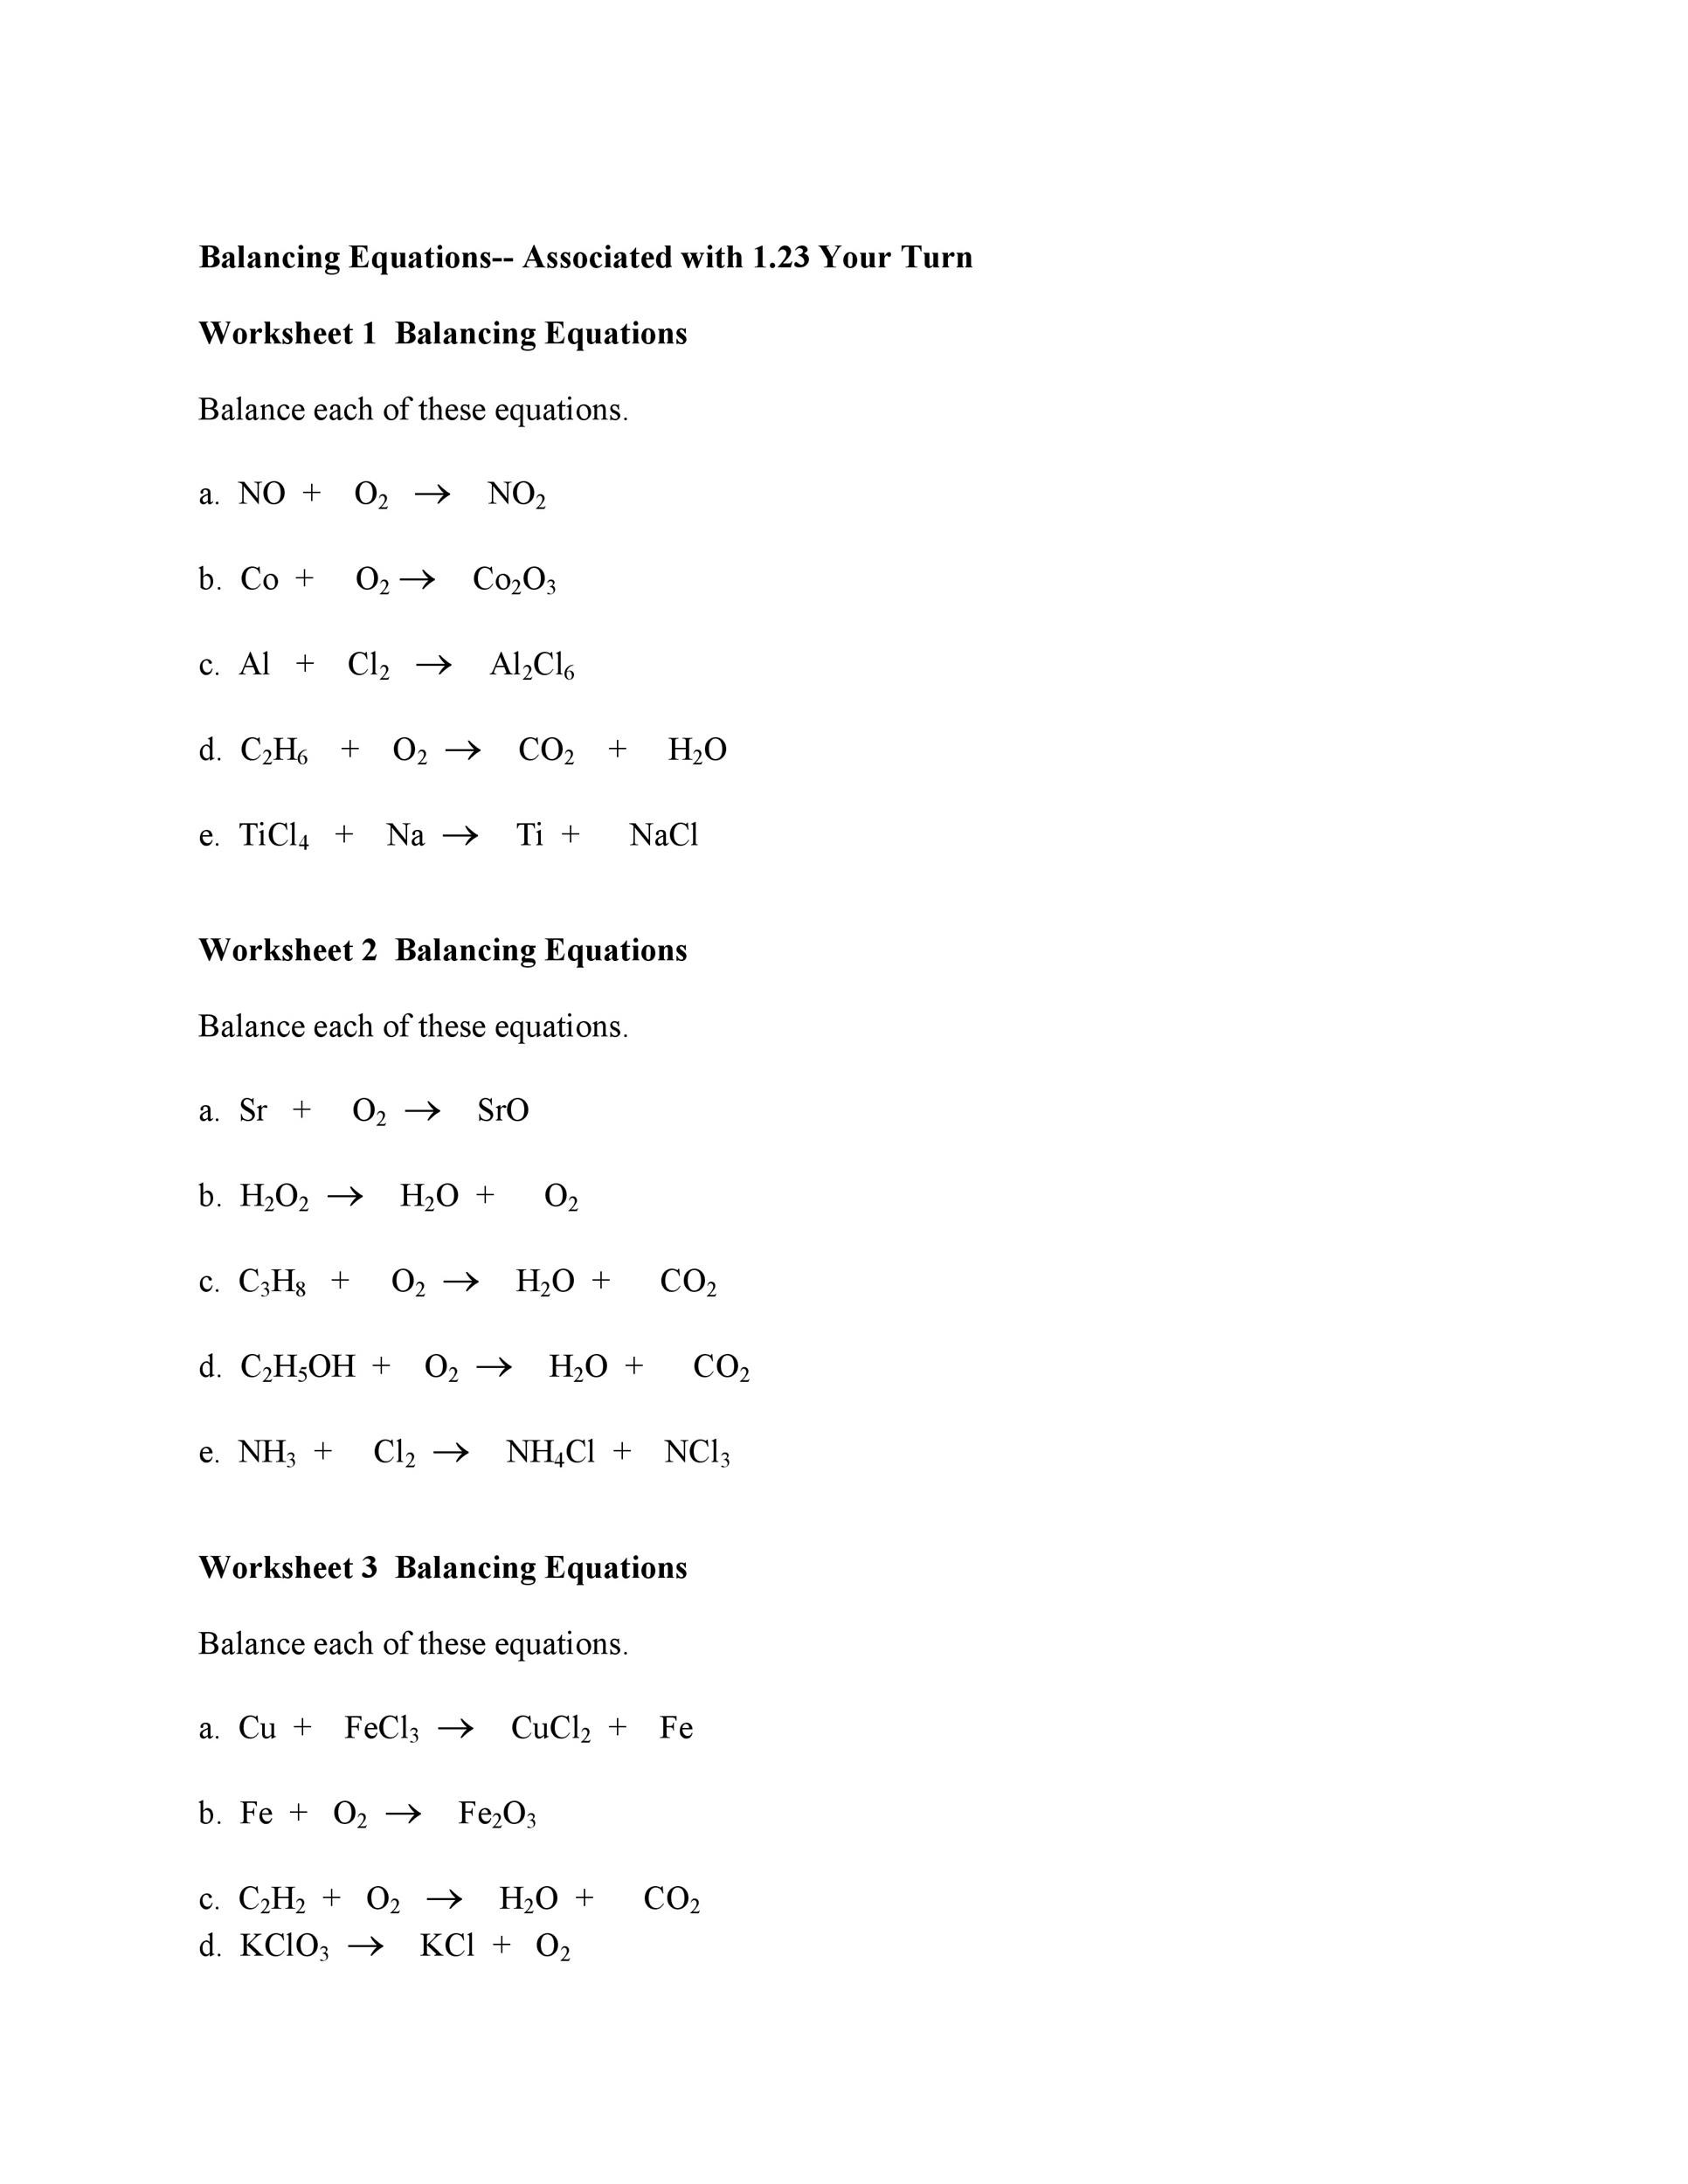 balancing equations worksheet 1 answers Termolak – Balancing Equations Worksheet 1